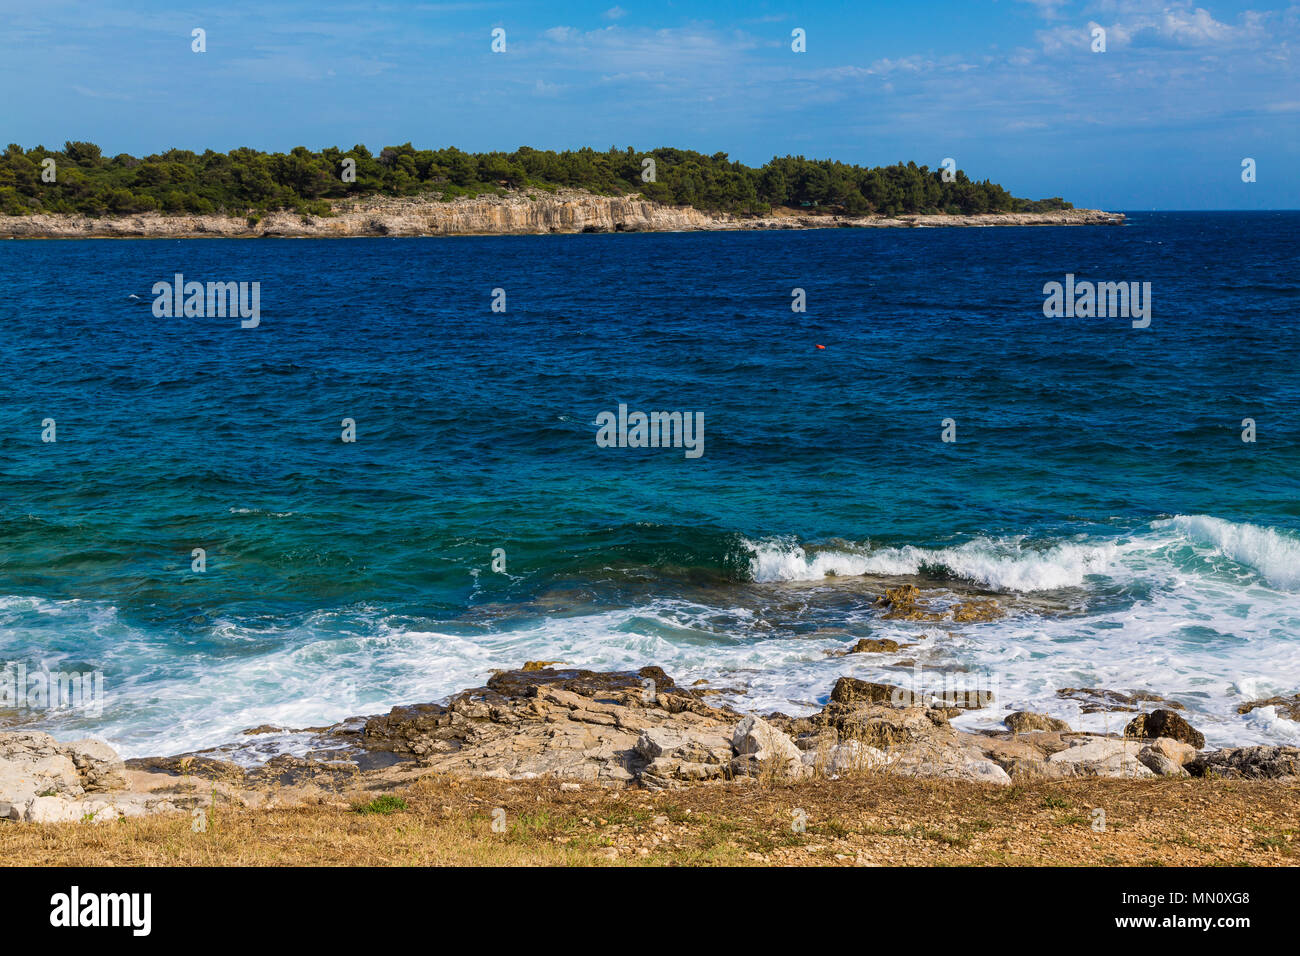 Coastline in Pula, Croatia - Stock Image